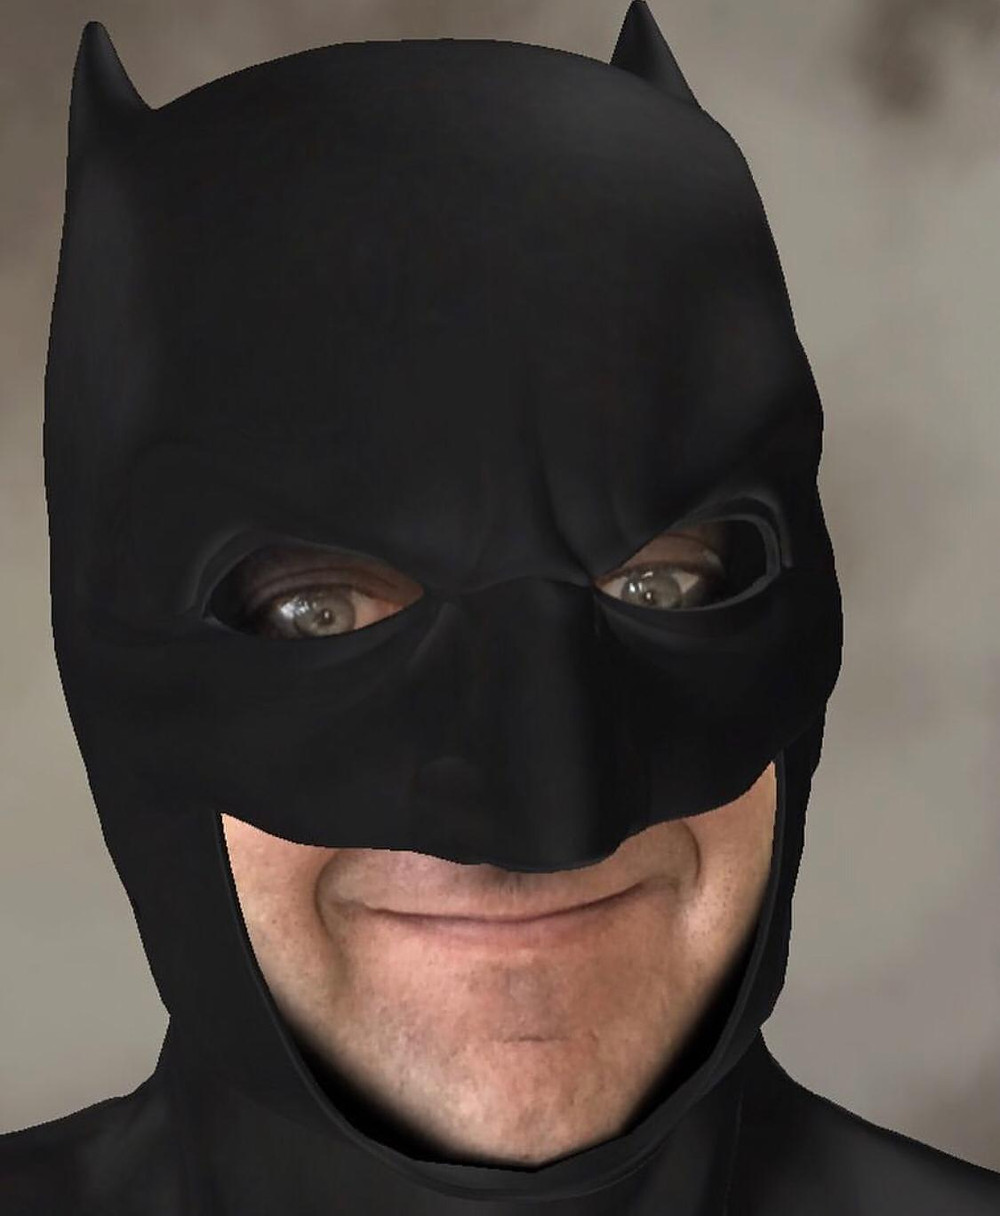 Man with fair skin and green eyes, wearing a Batman costume (headshot only)